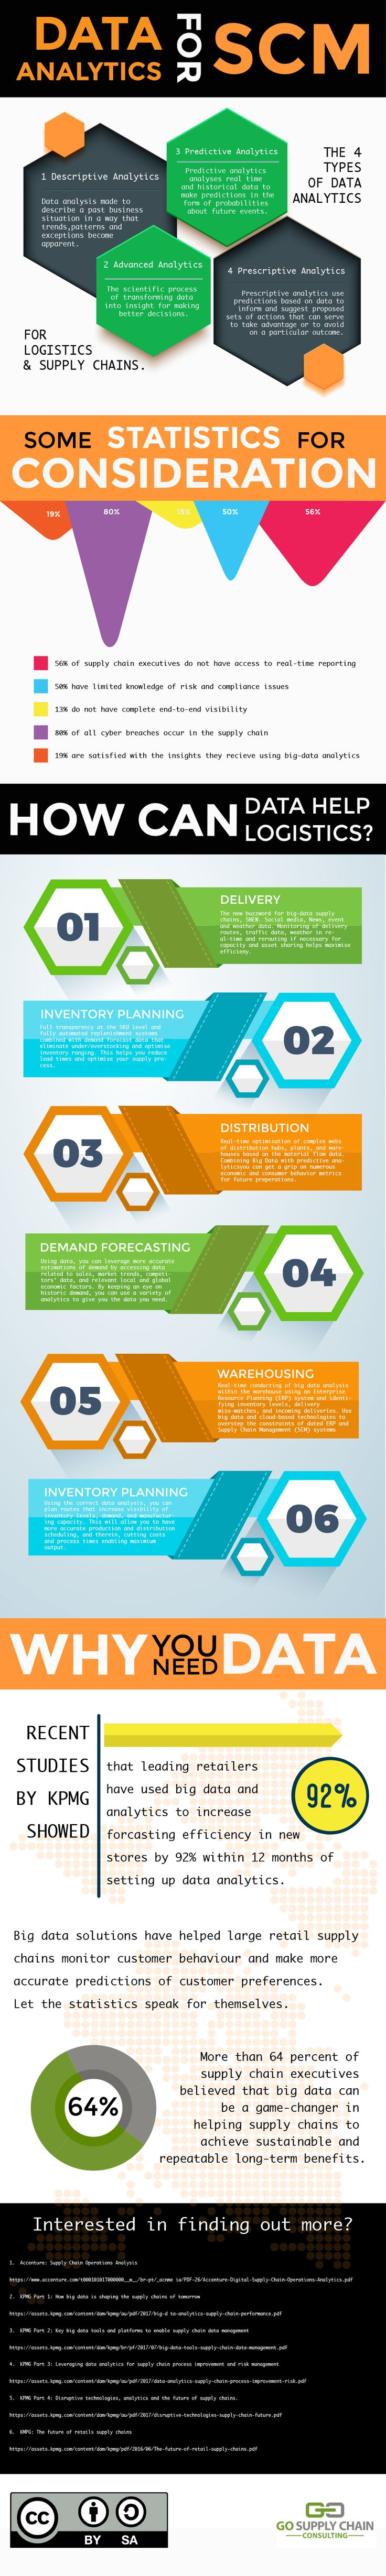 This infographic covers data analytics for supply chain management. It goes through the four types of data analytics for supply chains, how analytics can help logistics, and some great stats.